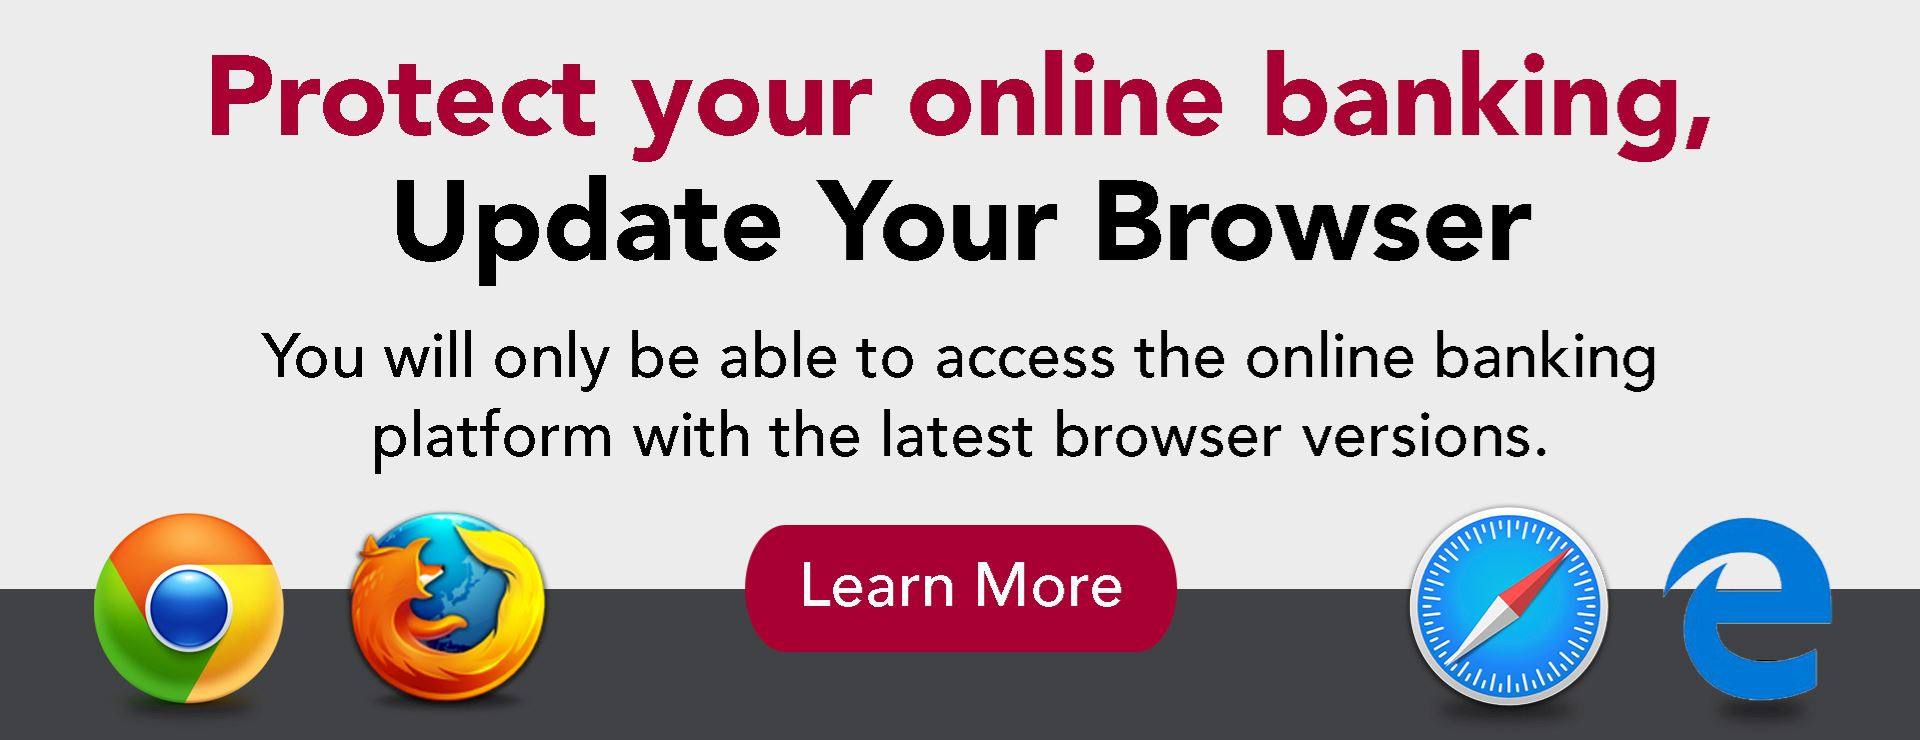 August 2020 - Update Your Browser